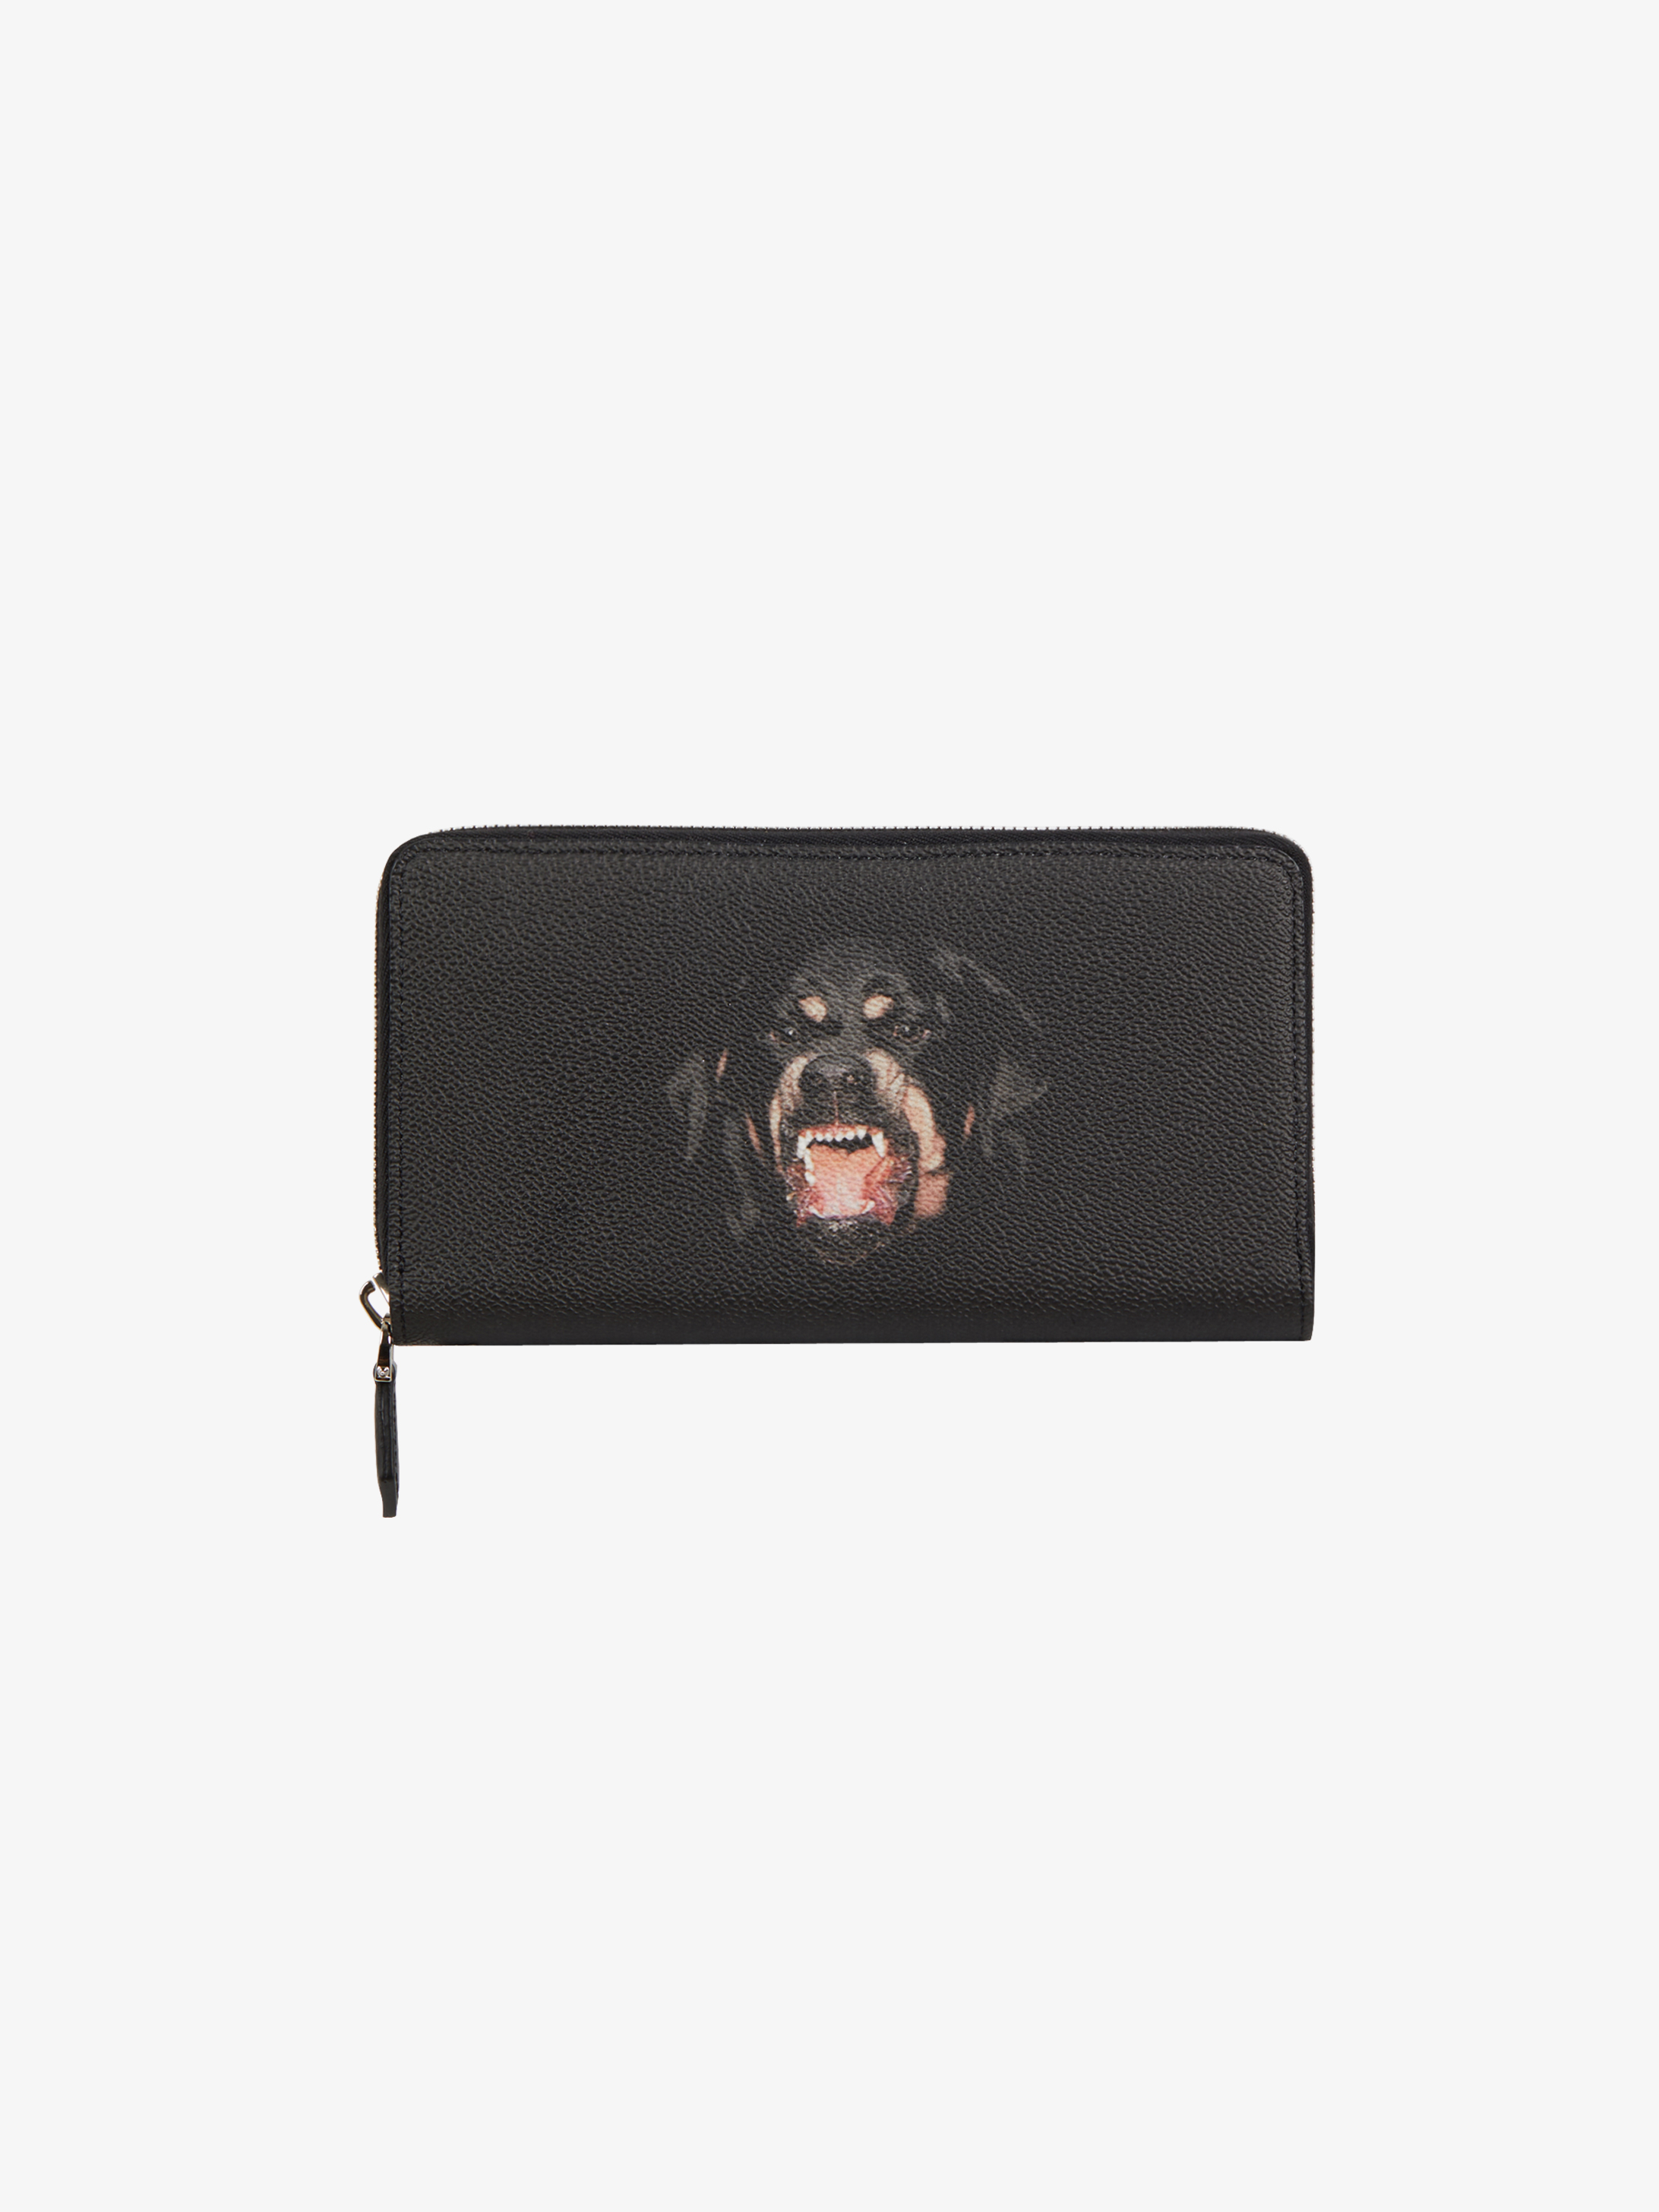 Rottweiler printed long zipped wallet